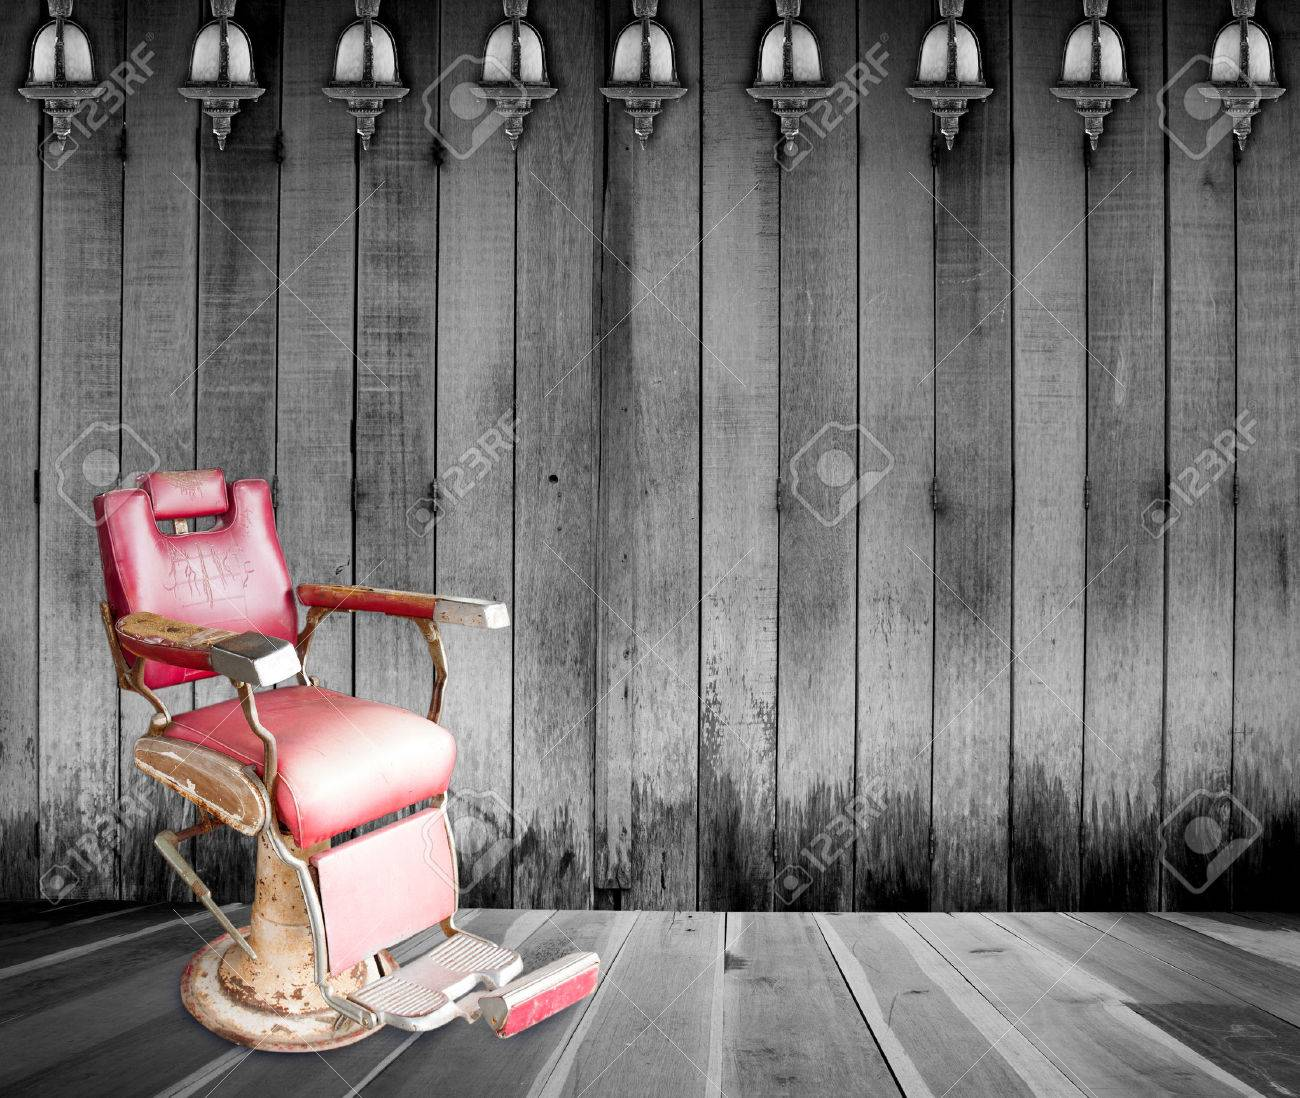 Empty room with chair violin and sheet music on floor photograph - Broken Chair Antique Barber Chair In Room